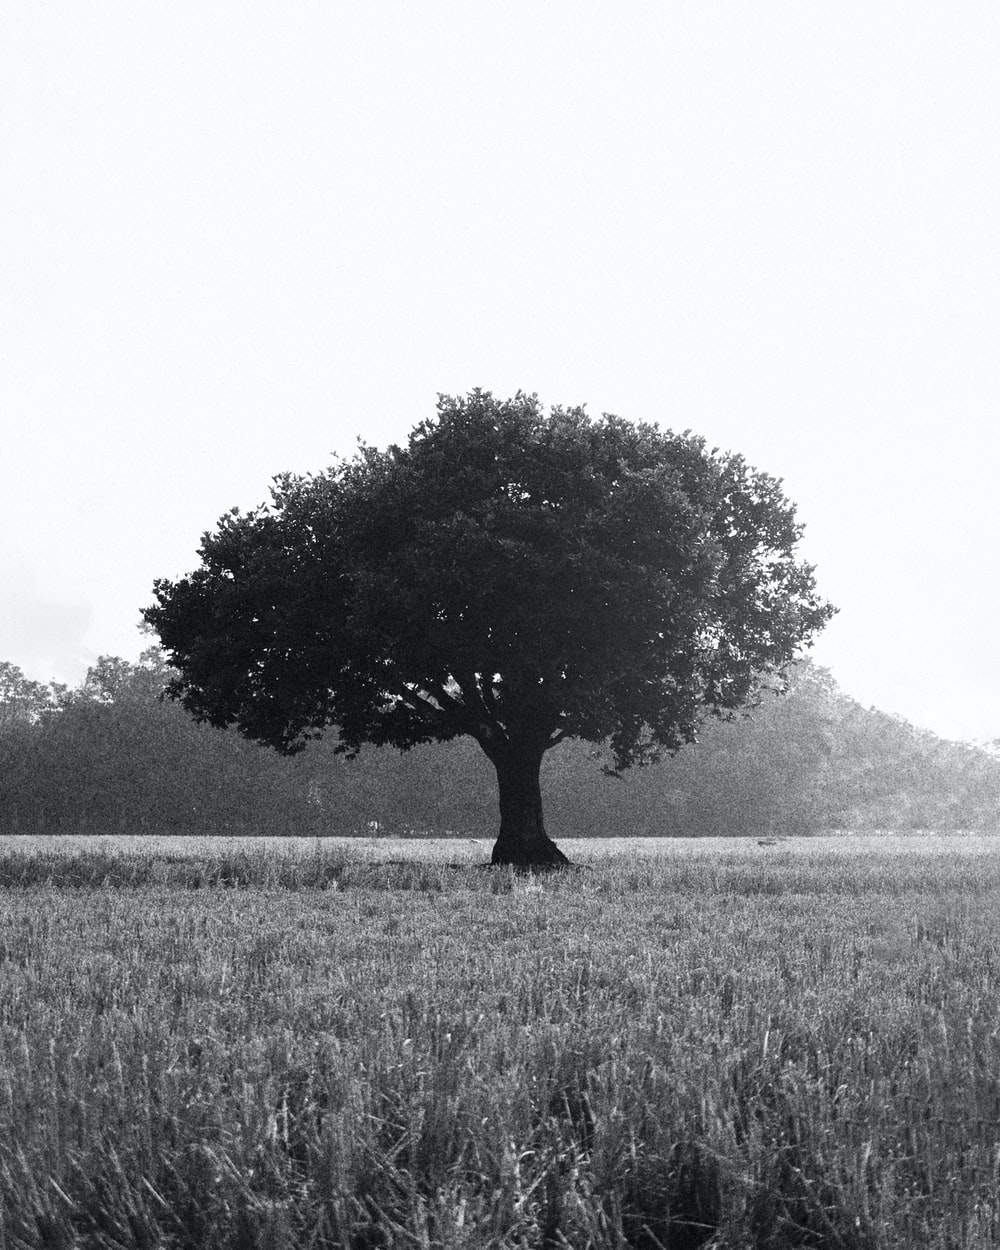 grayscale photo of tree in the middle of grass field